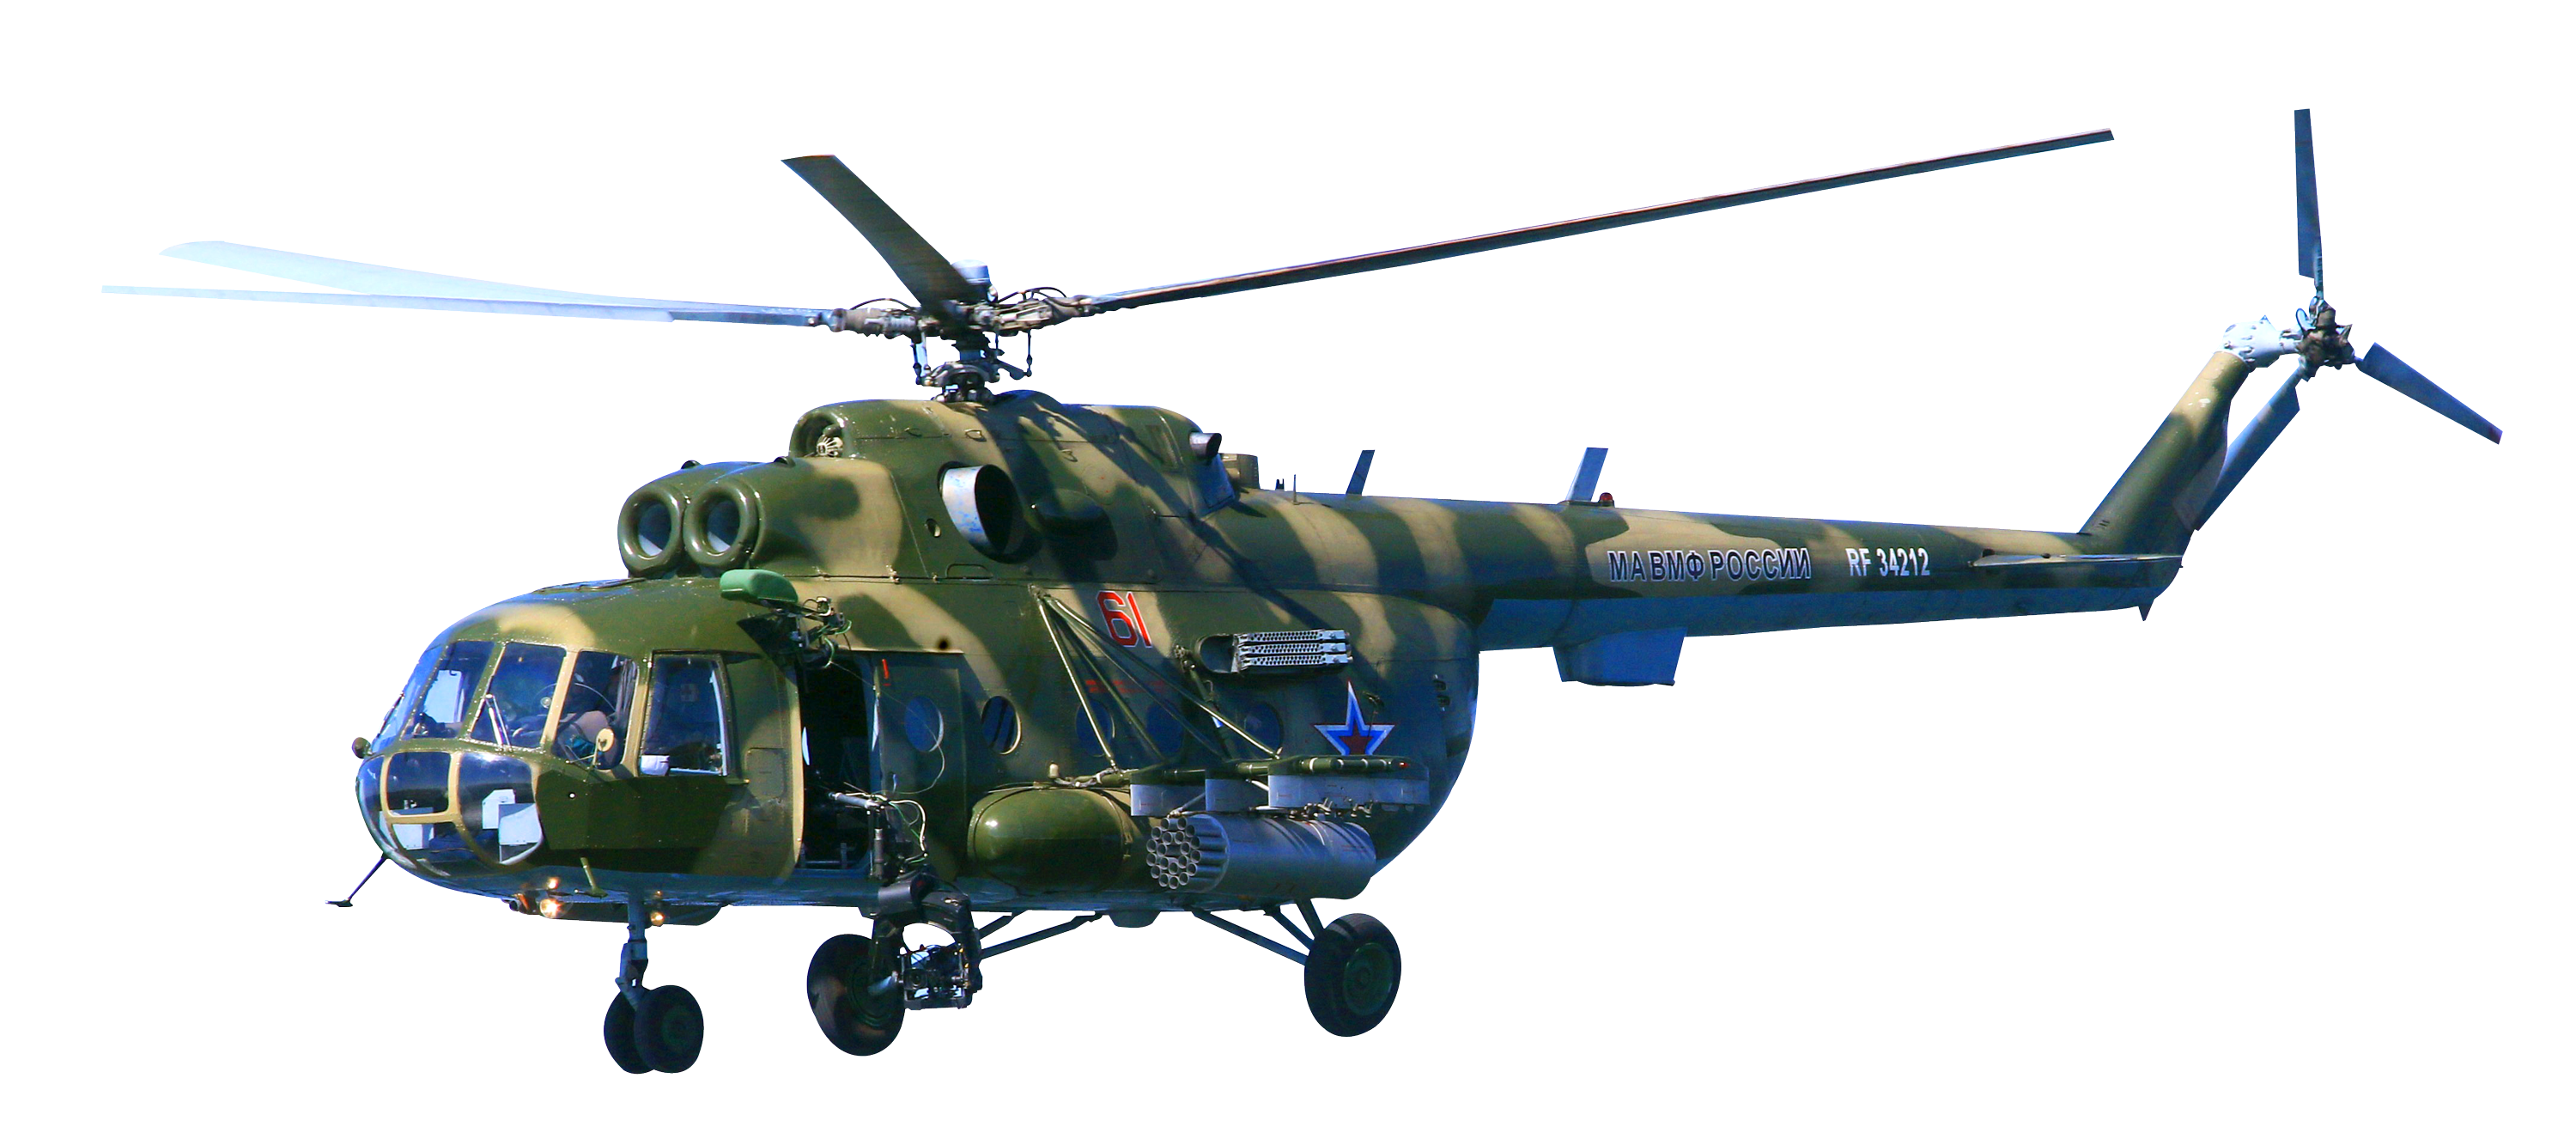 Military Helicopter PNG Image